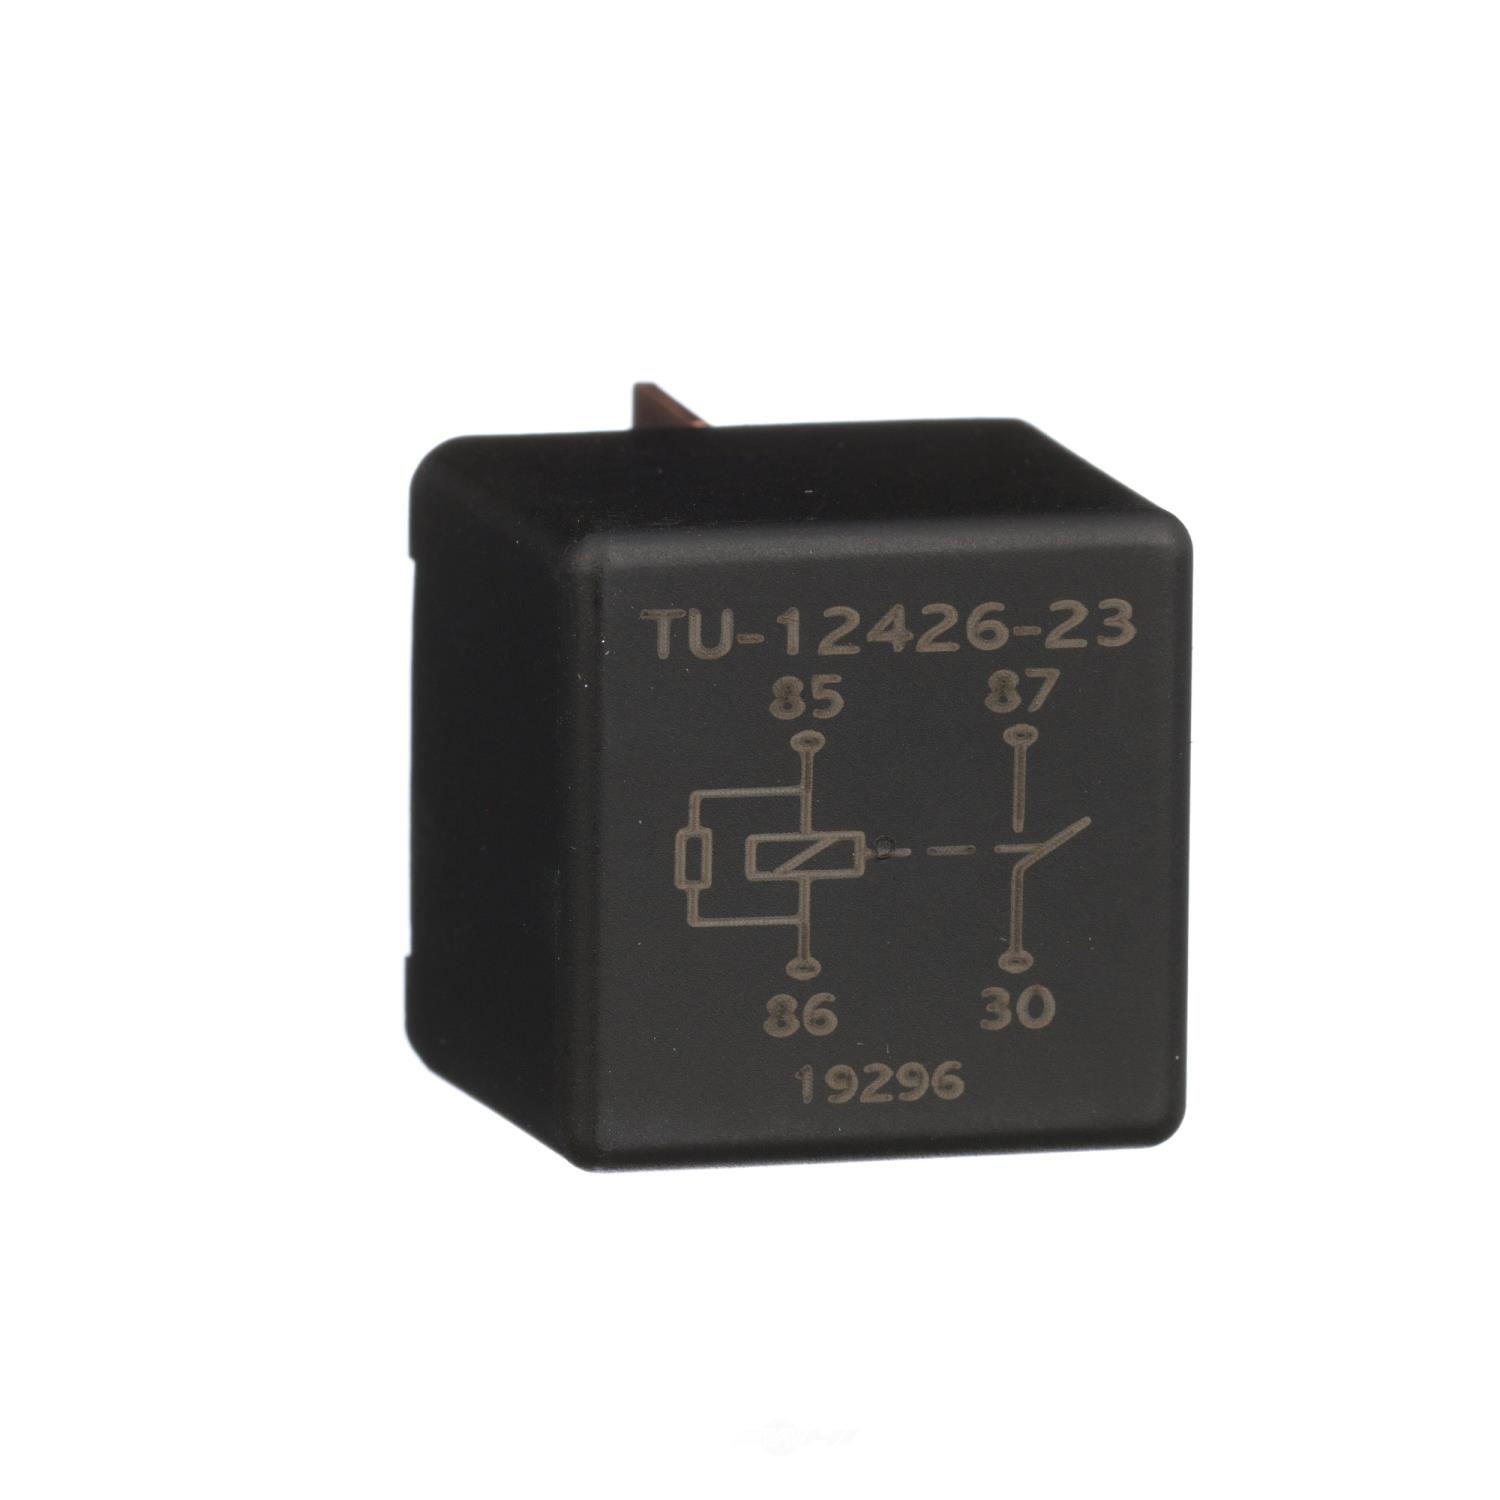 STANDARD MOTOR PRODUCTS - Starter Relay - STA RY-1500